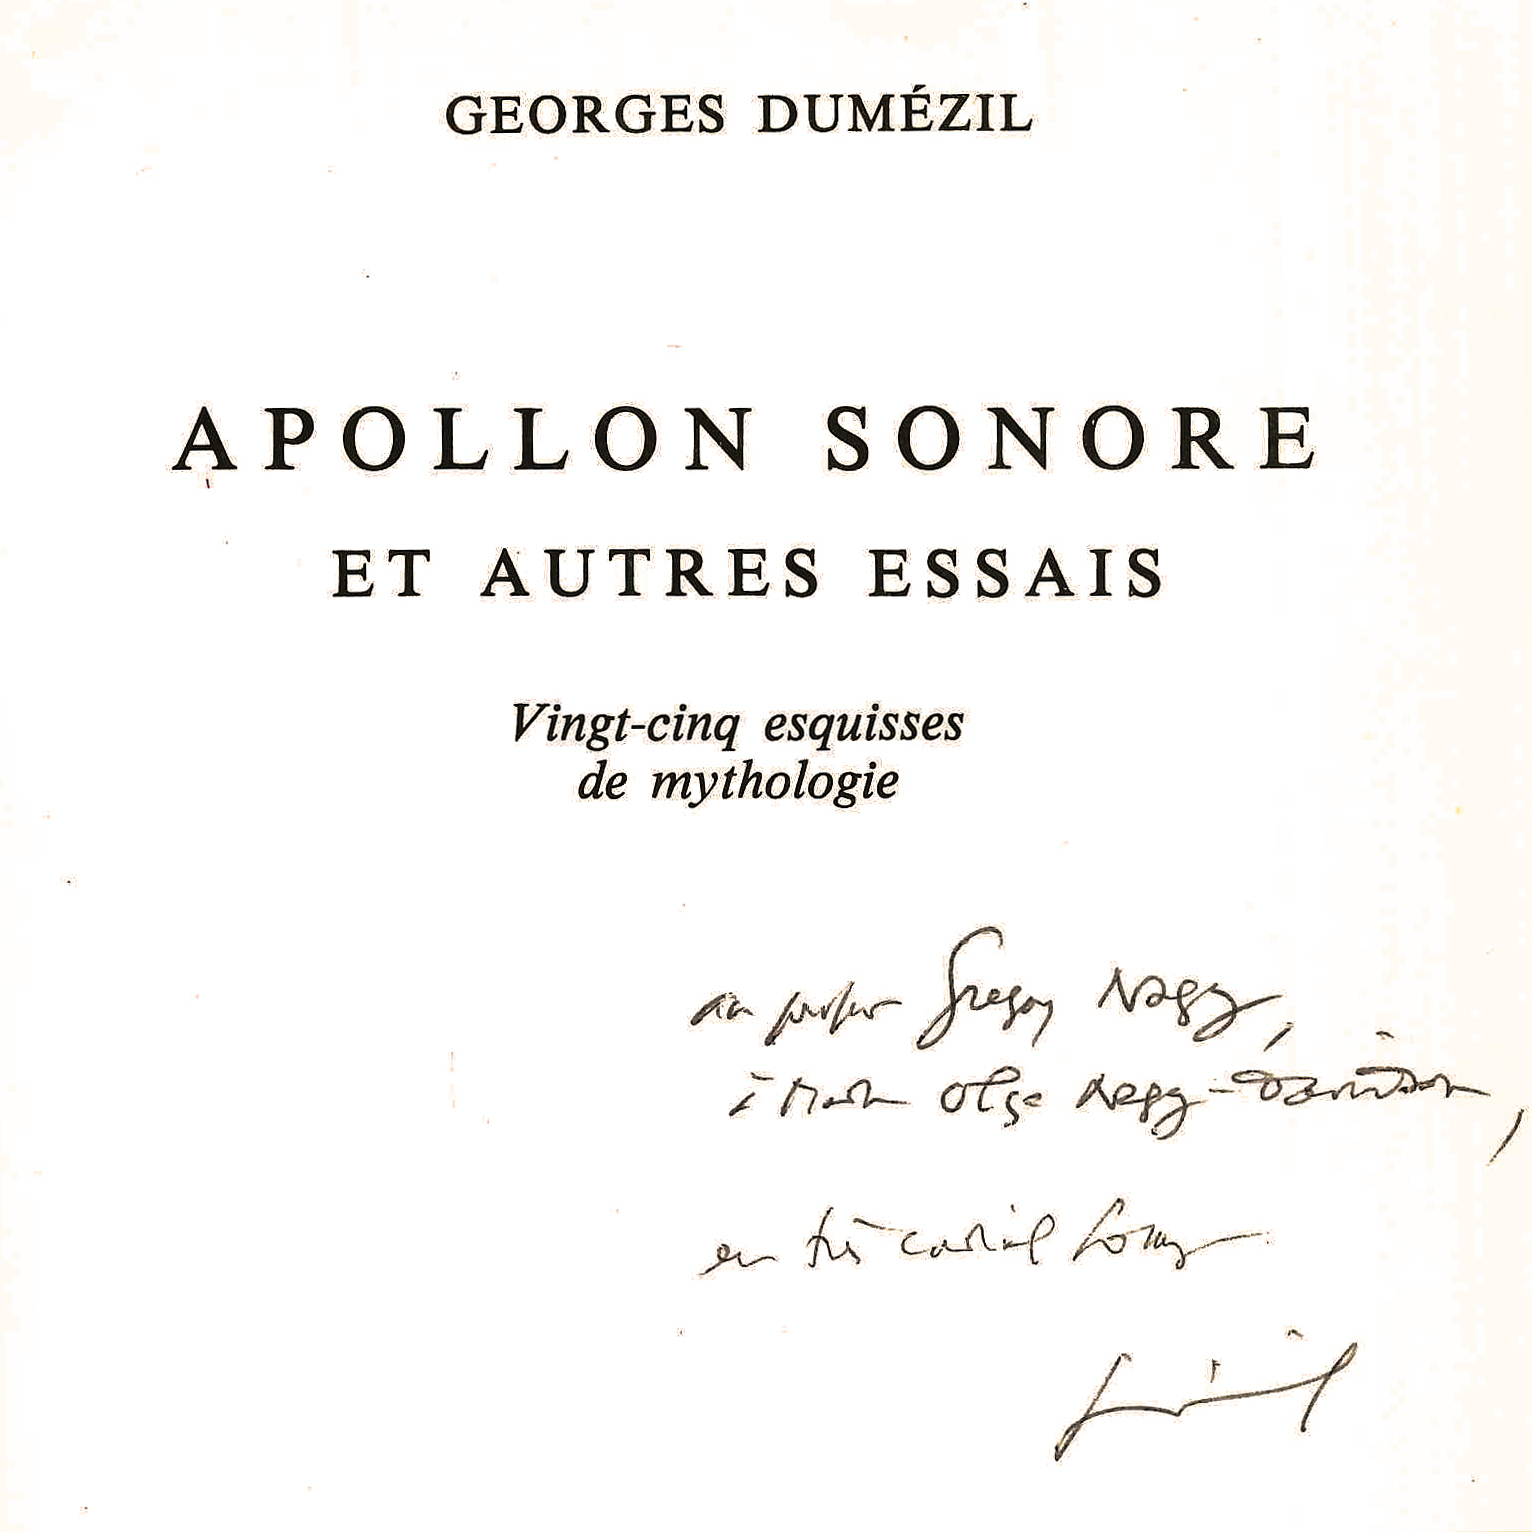 Inscribed, by the hand of Georges Dumézil, on the front page of a copy of his book, Apollon sonore, 1982.